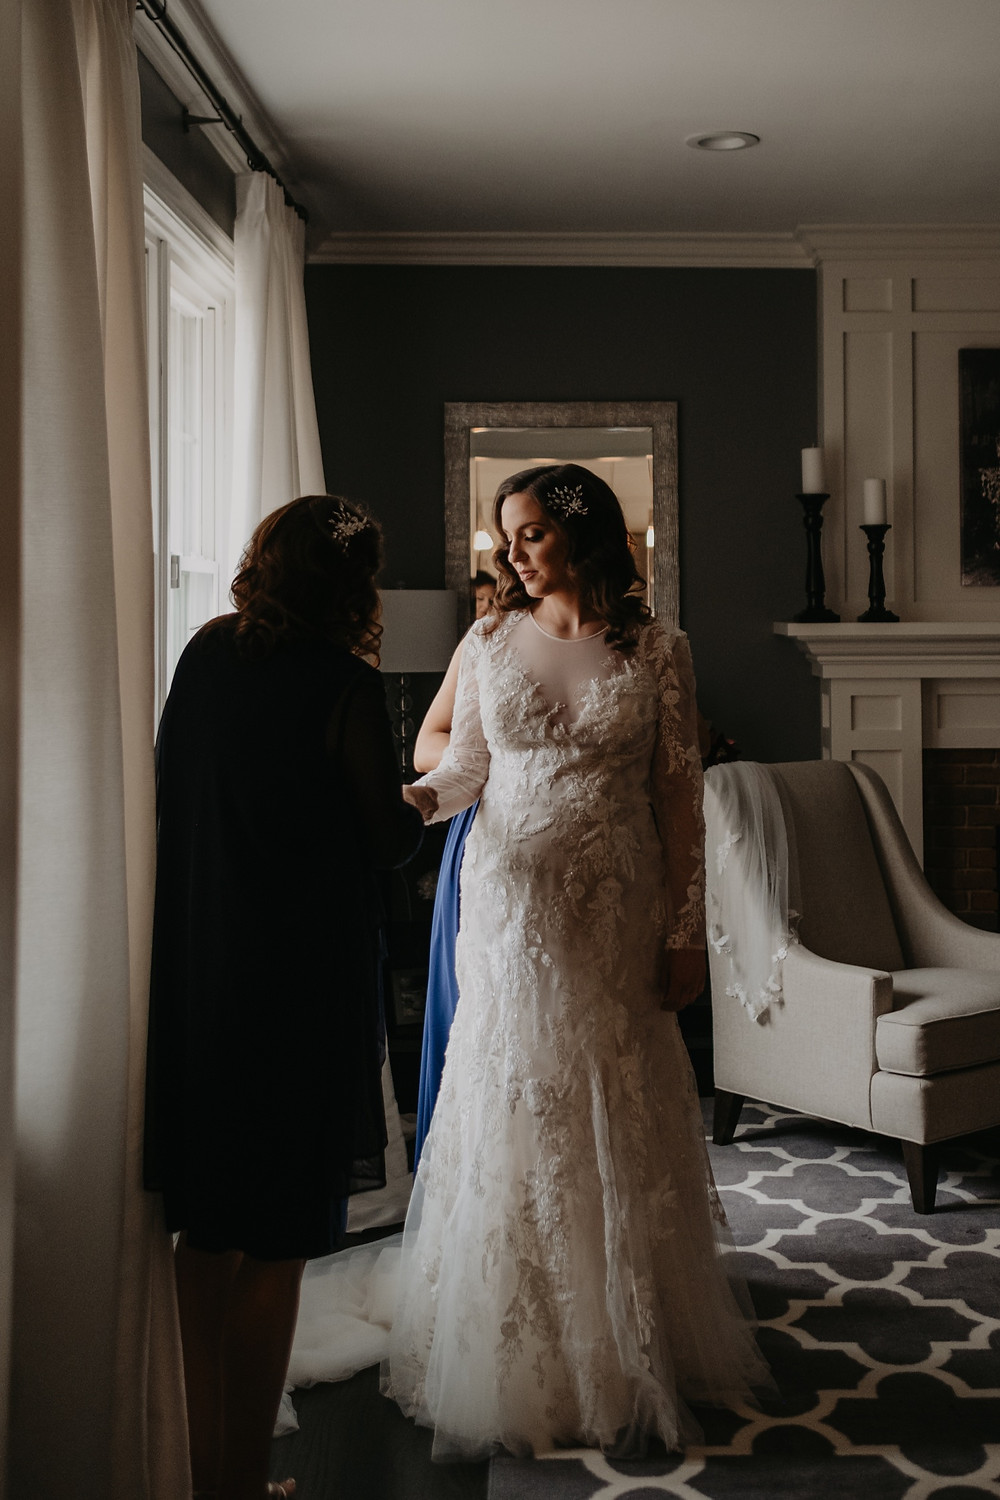 Bride on wedding day getting ready. Photographed by Nicole Leanne Photography.